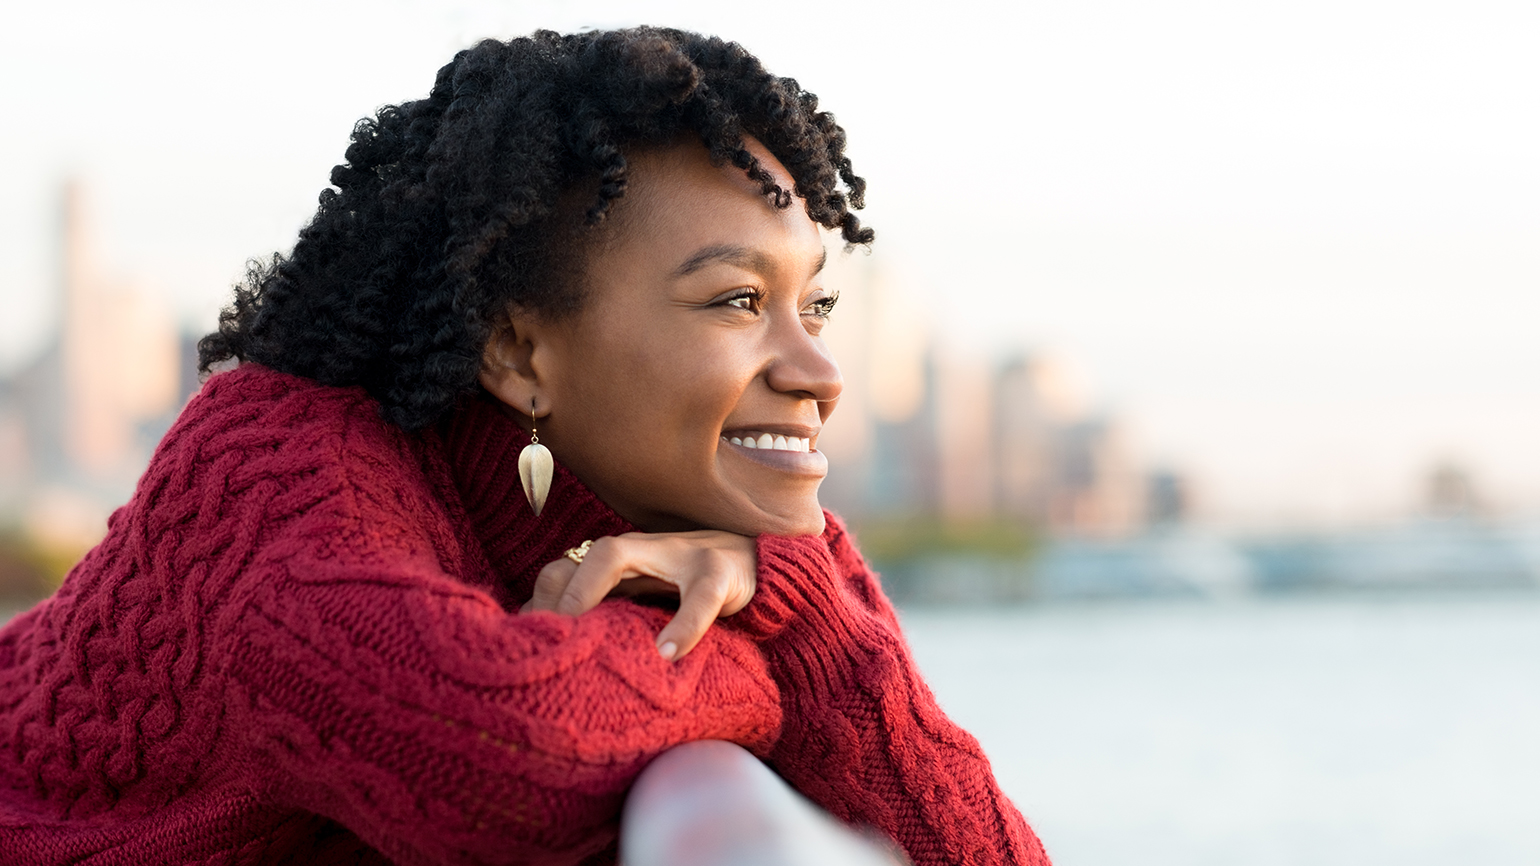 A smiling young woman stands on the banks of a river